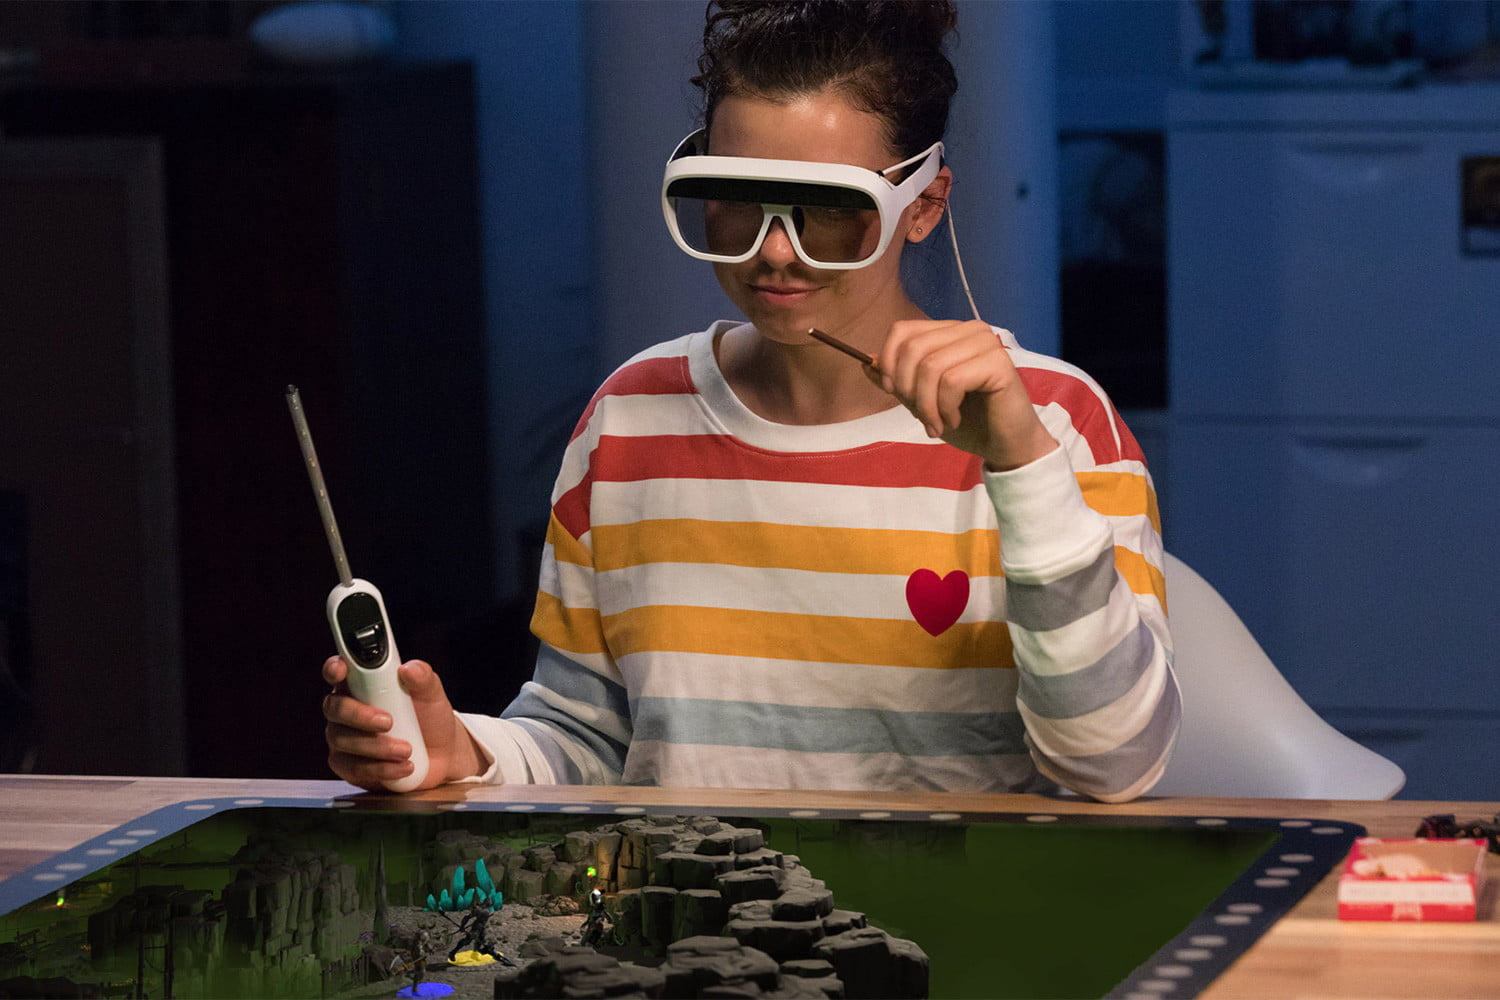 Awesome Tech You Can't Buy Yet: Holographic games and a tool shed in a box